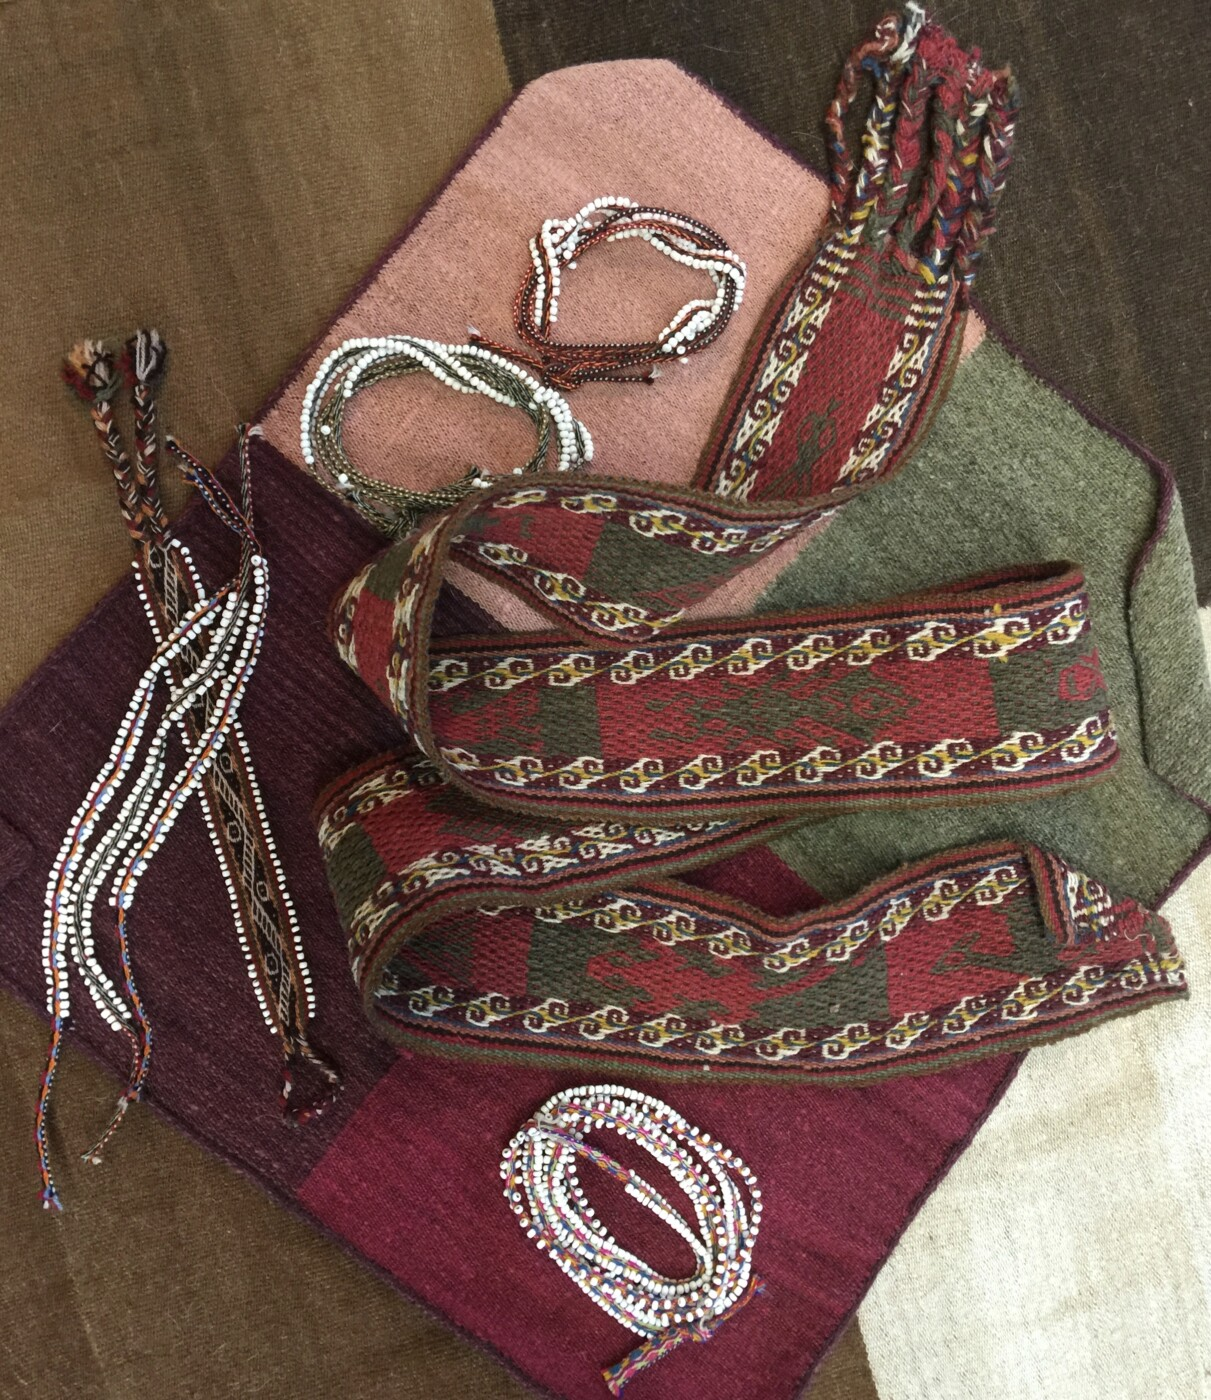 Peruvian Woven Belts, Watana Wrist and Boot Wraps